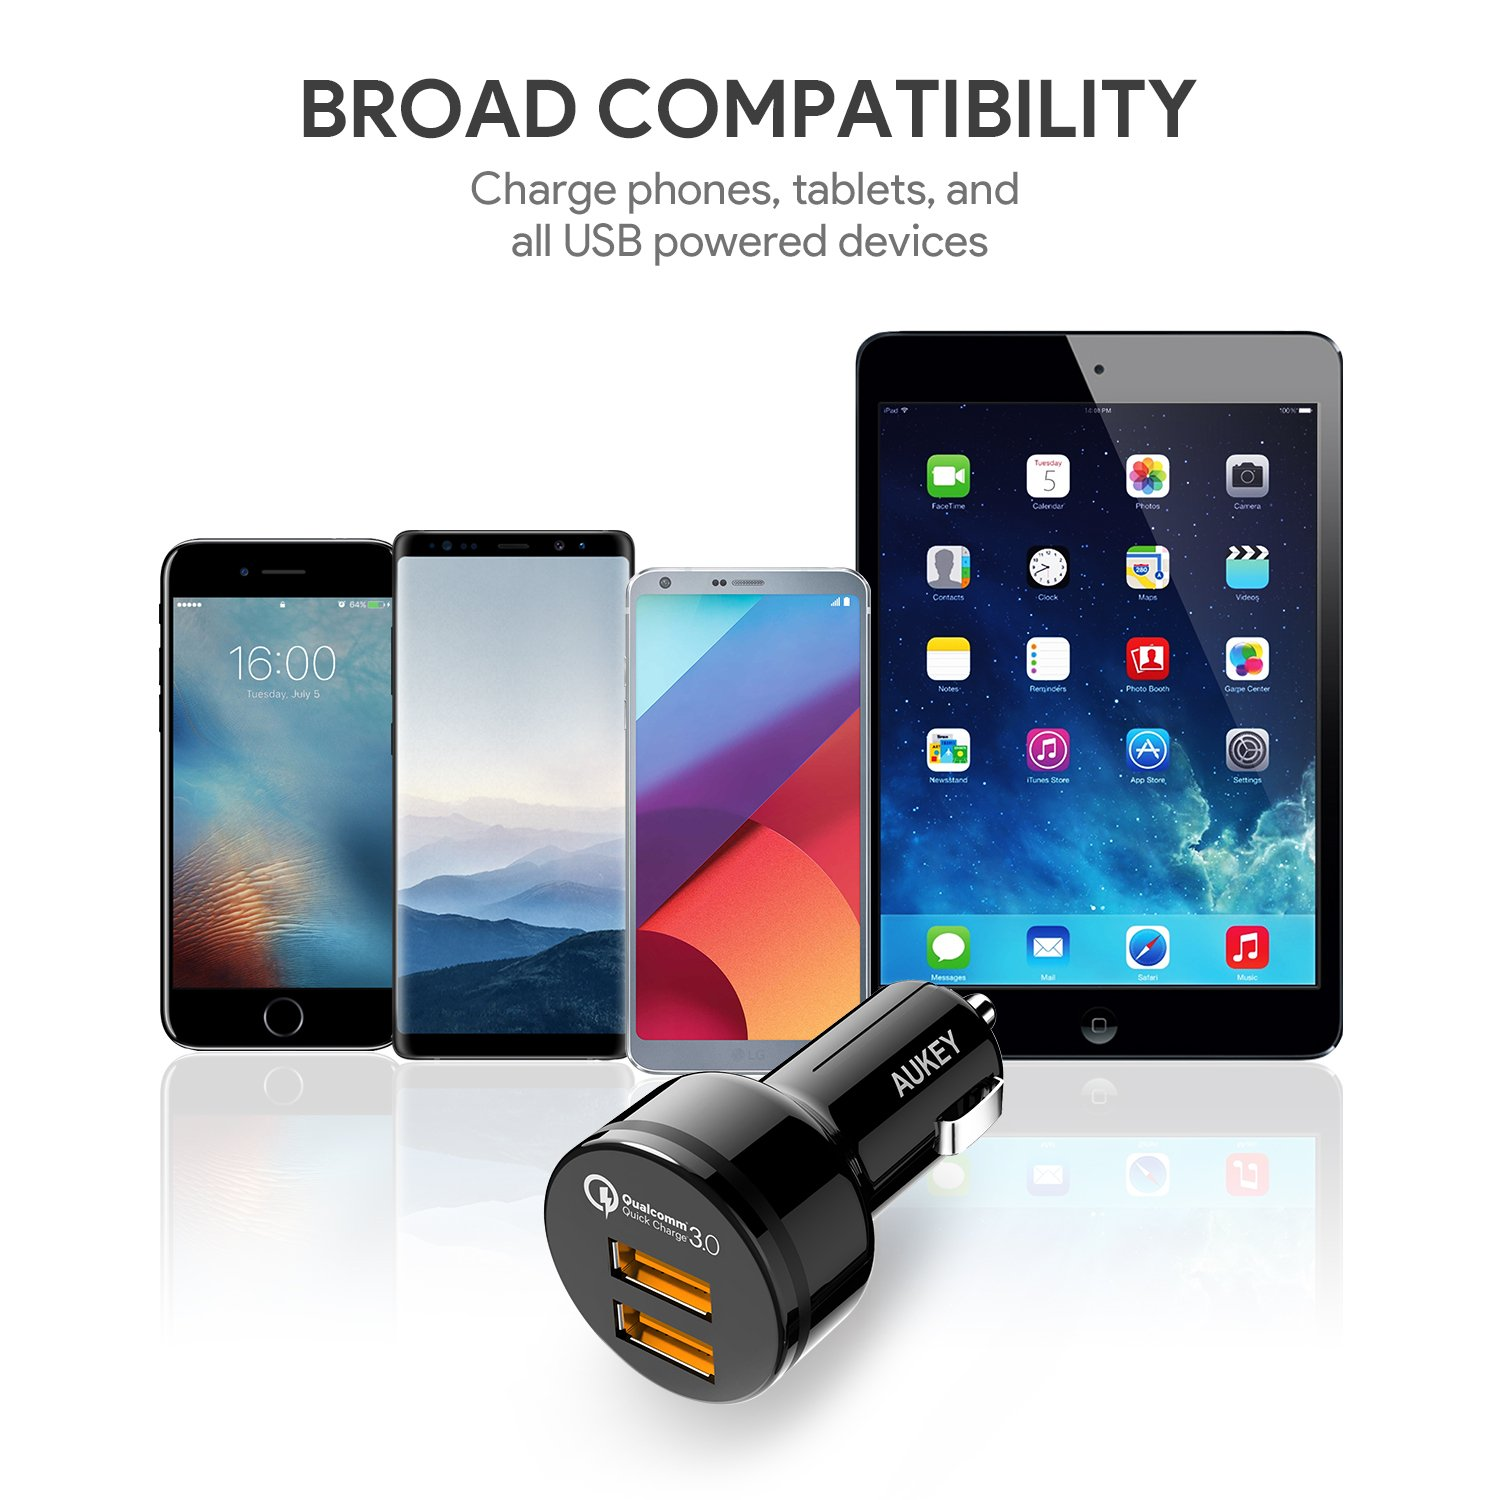 AUKEY Car Charger with Quick Charge 3.0, 39W Dual Ports for Samsung Galaxy Note8 / S9 / S8 / S8+, LG G6 / V30, HTC 10 and More   Qualcomm Certified by AUKEY (Image #4)